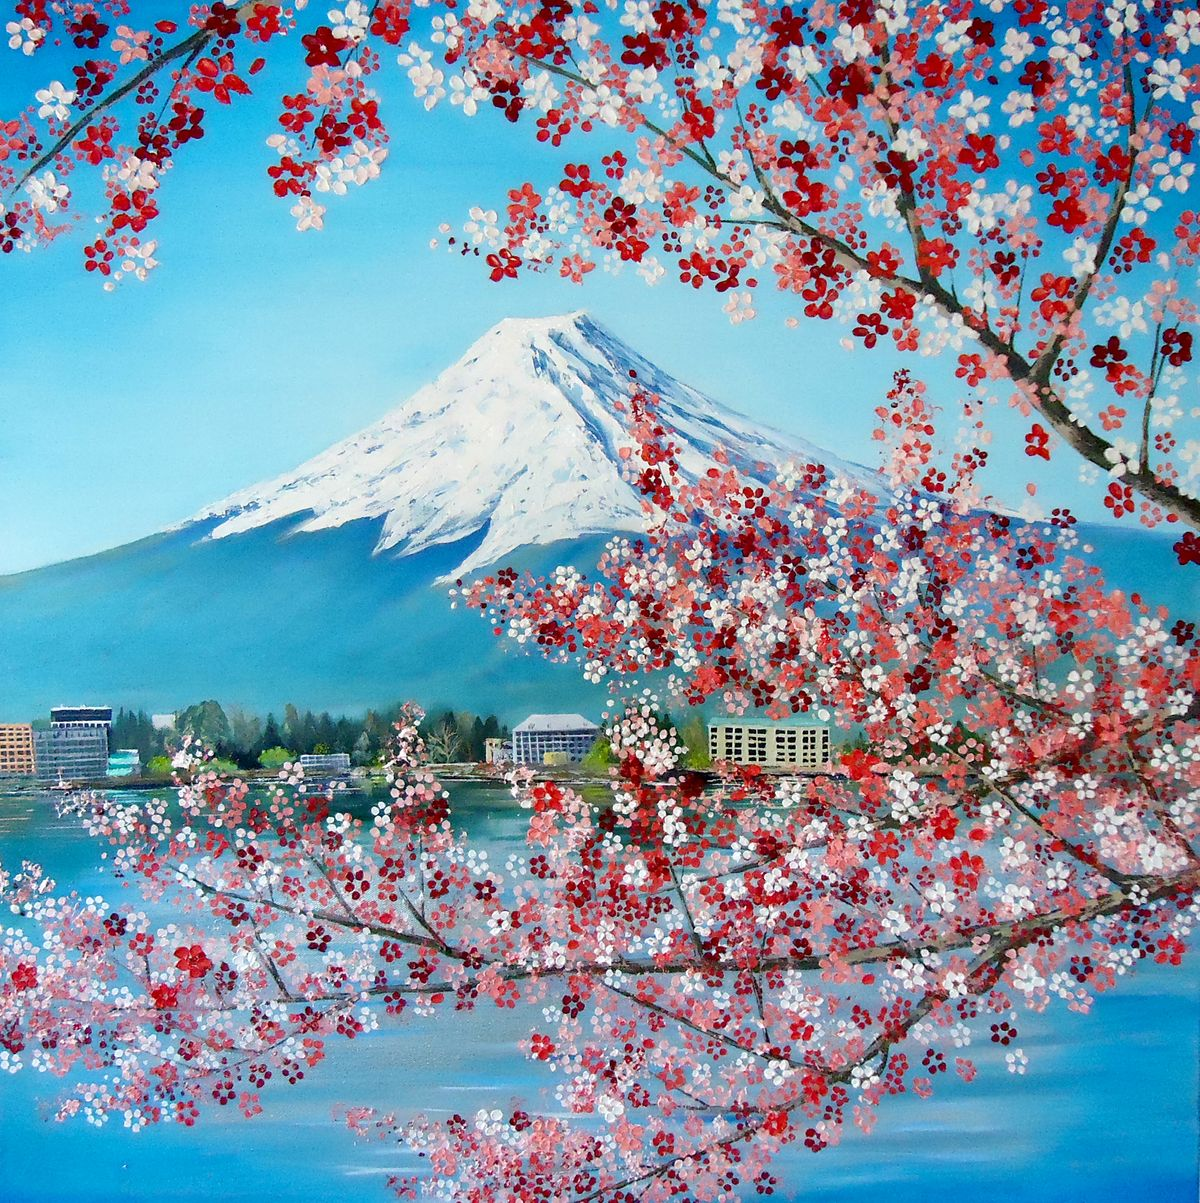 janis_fowler_cherry blossoms at mount fuji.jpg